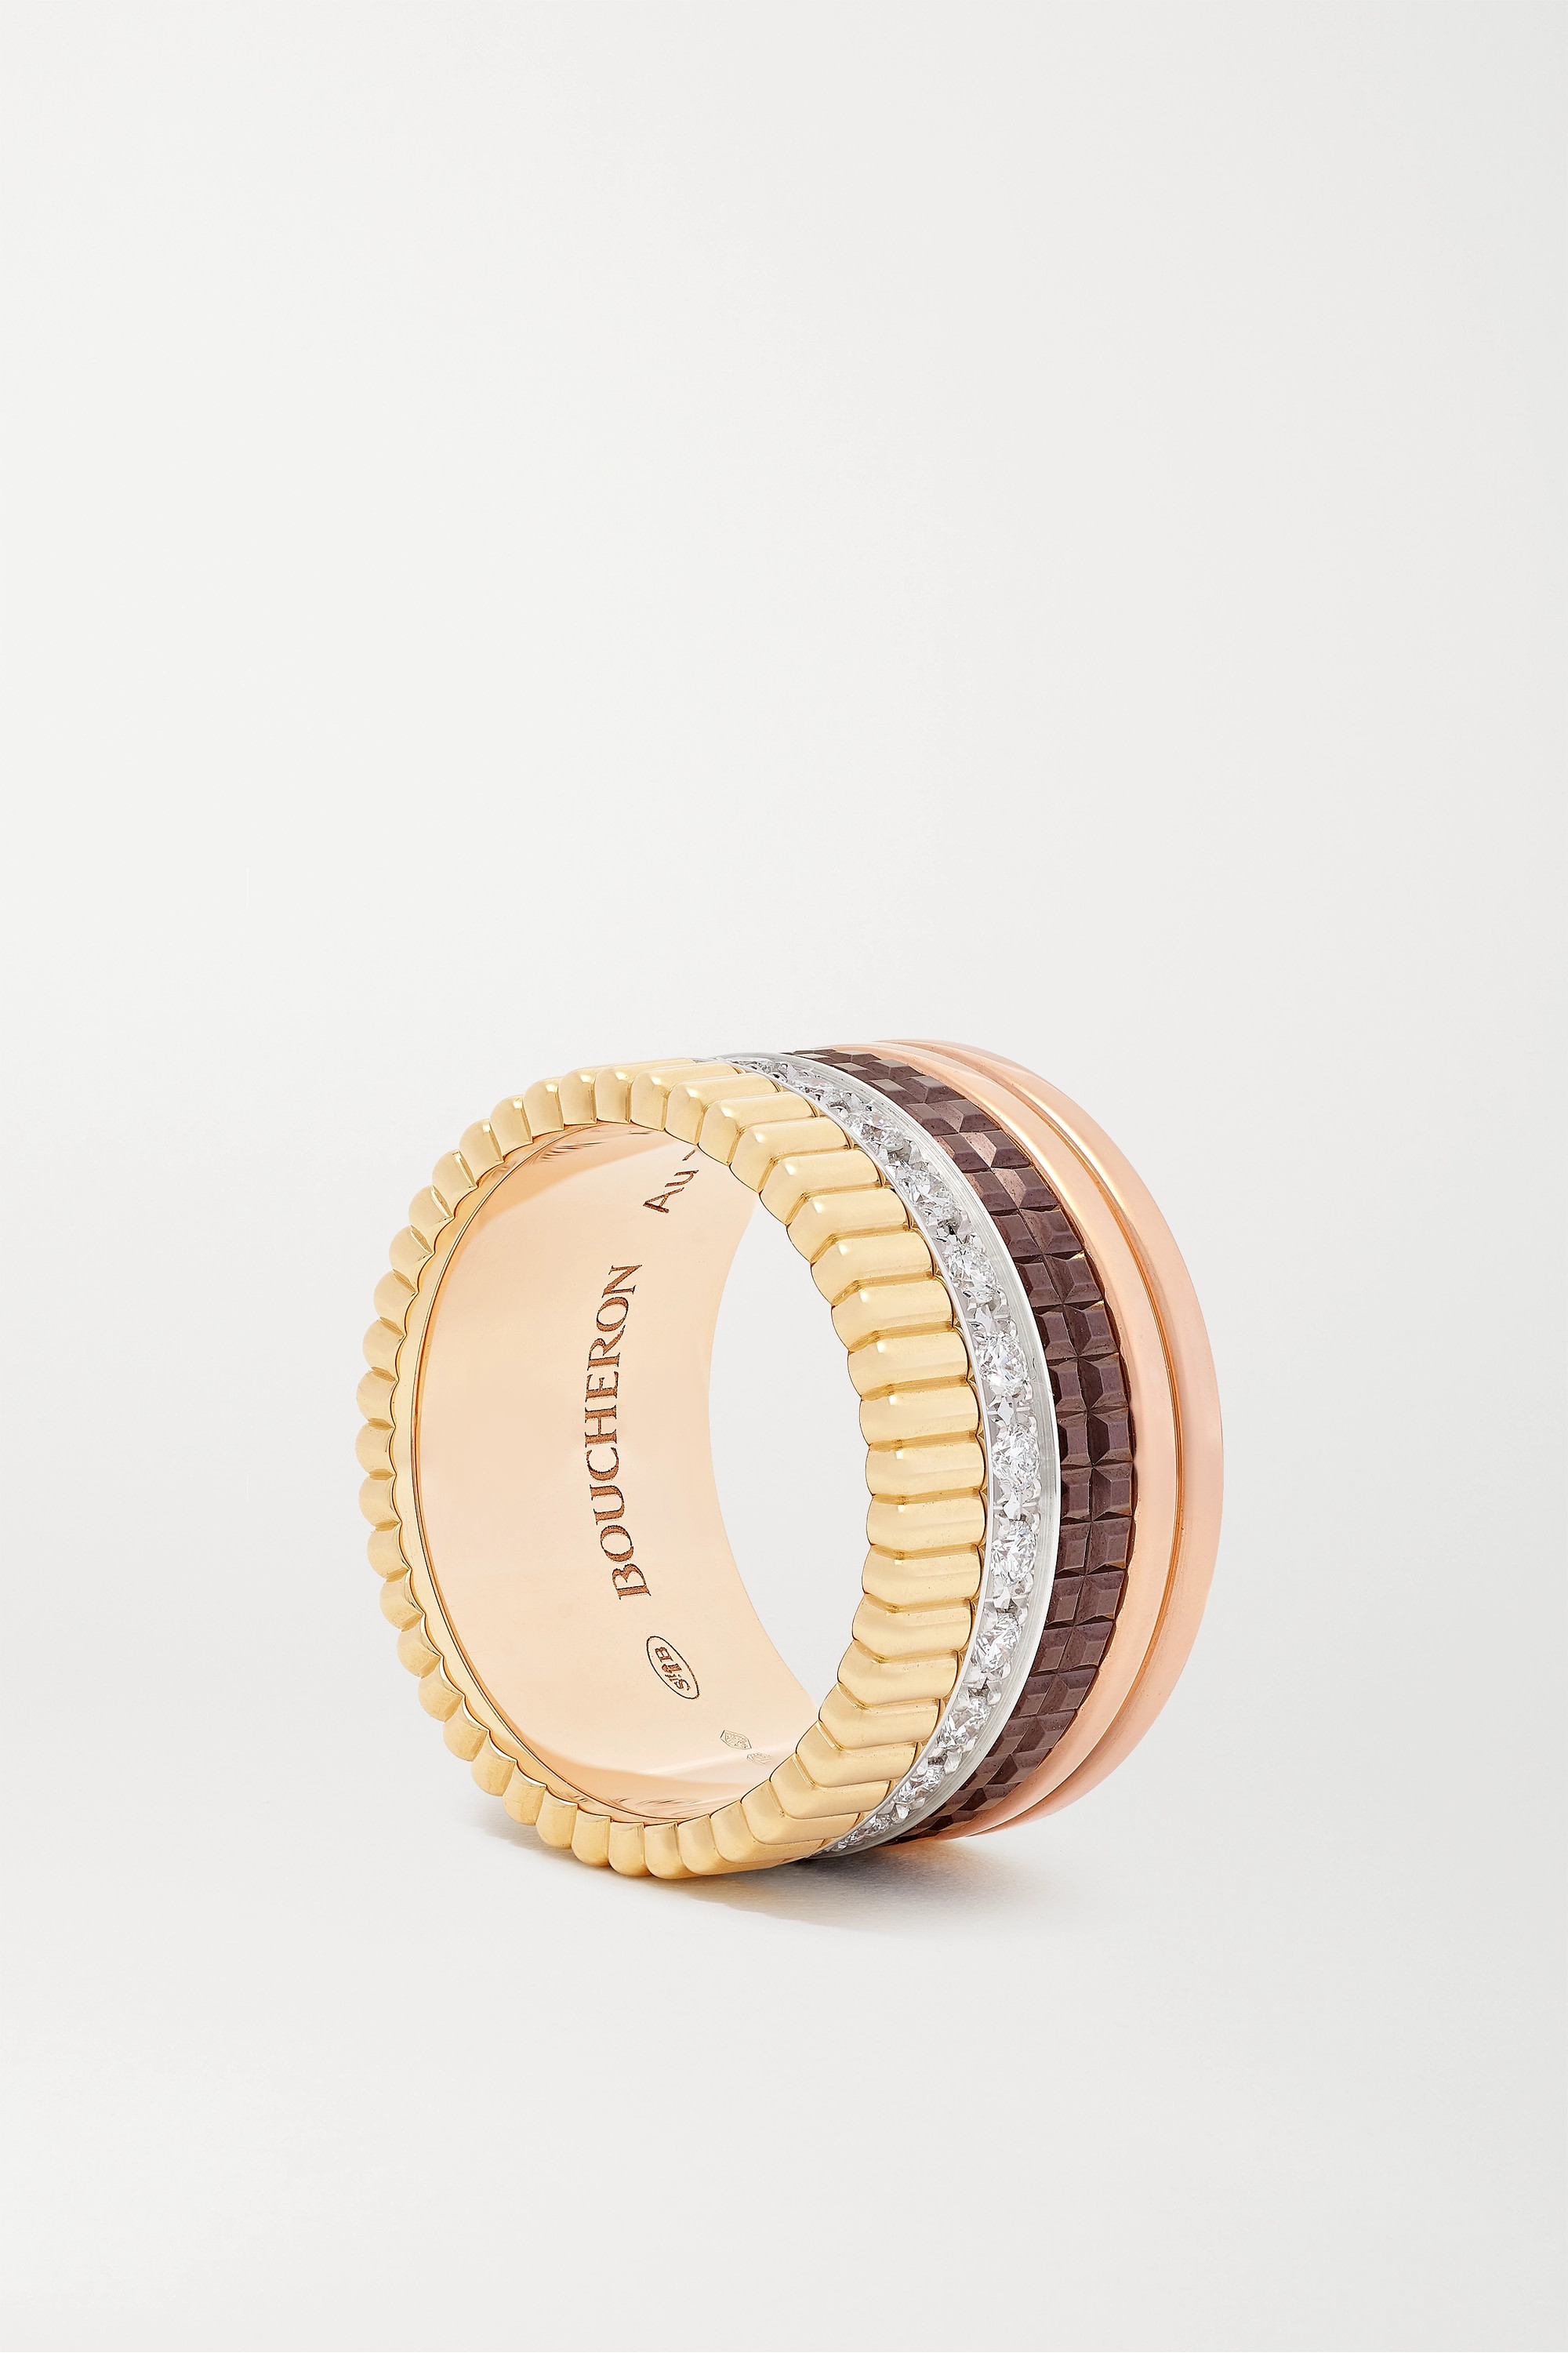 Boucheron Quatre Classique Large 18-karat yellow, white and rose gold, PVD and diamond ring